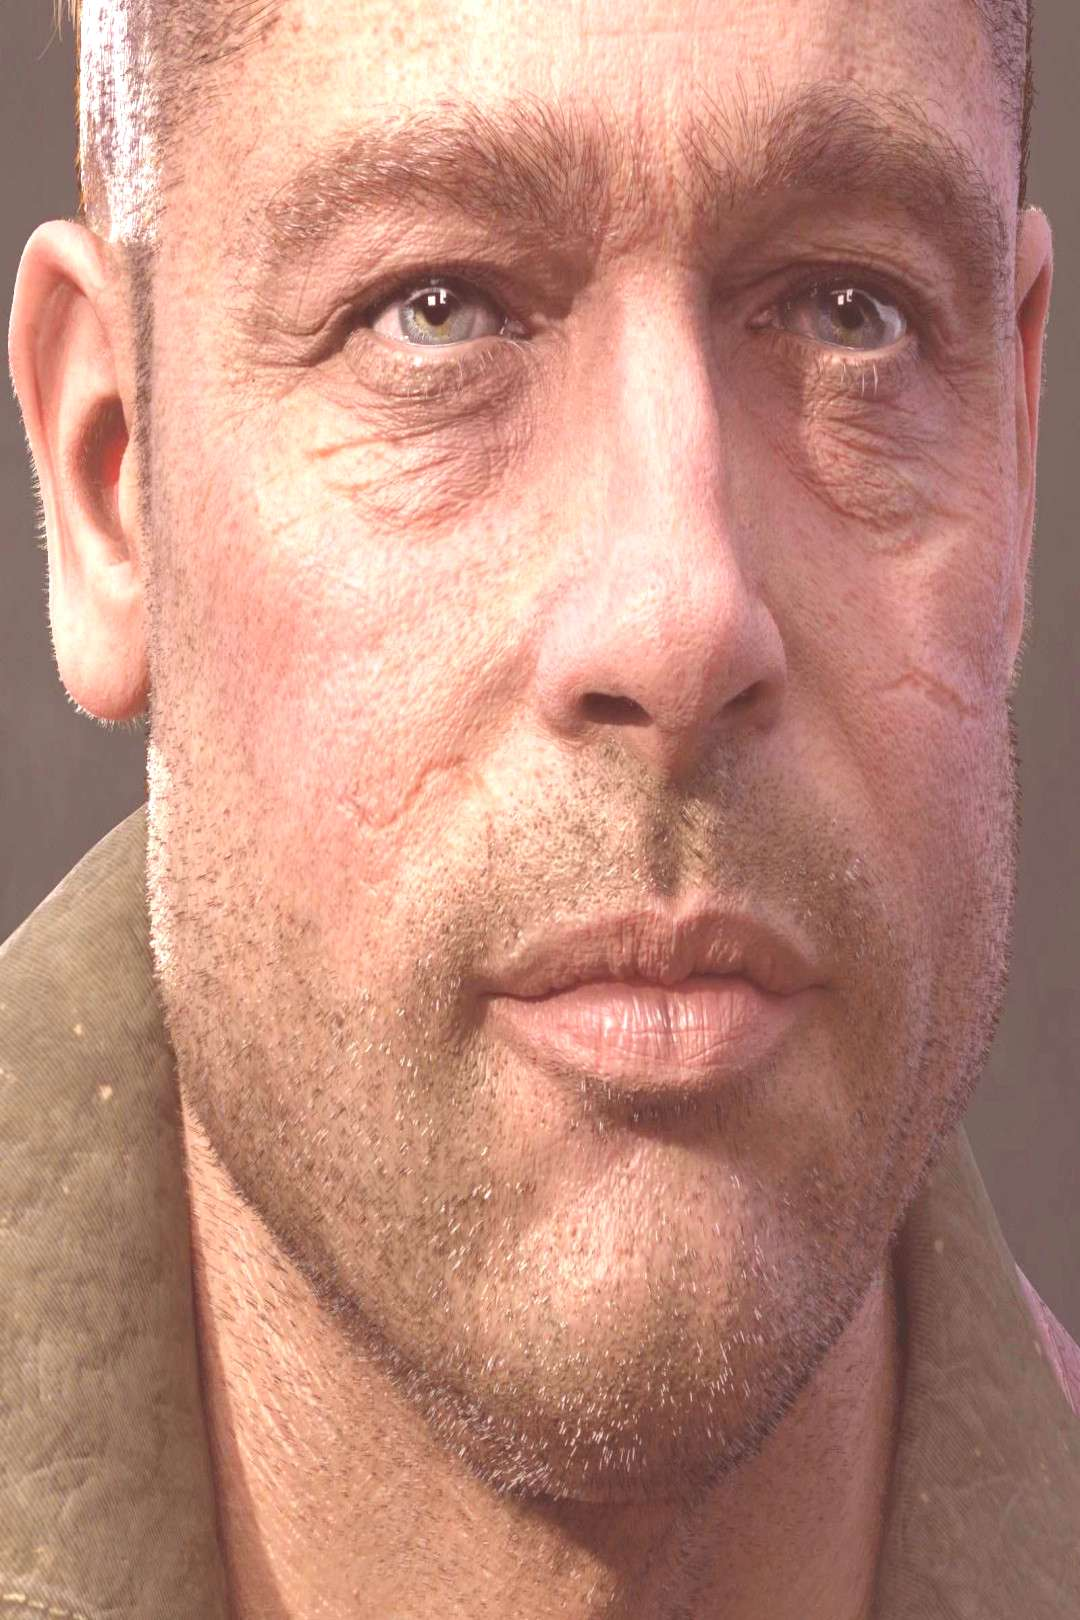 Fury Brad Pitt, Sujesh Nair - -You can find Zbrush and more on our website.Fury Brad Pitt, Sujesh N